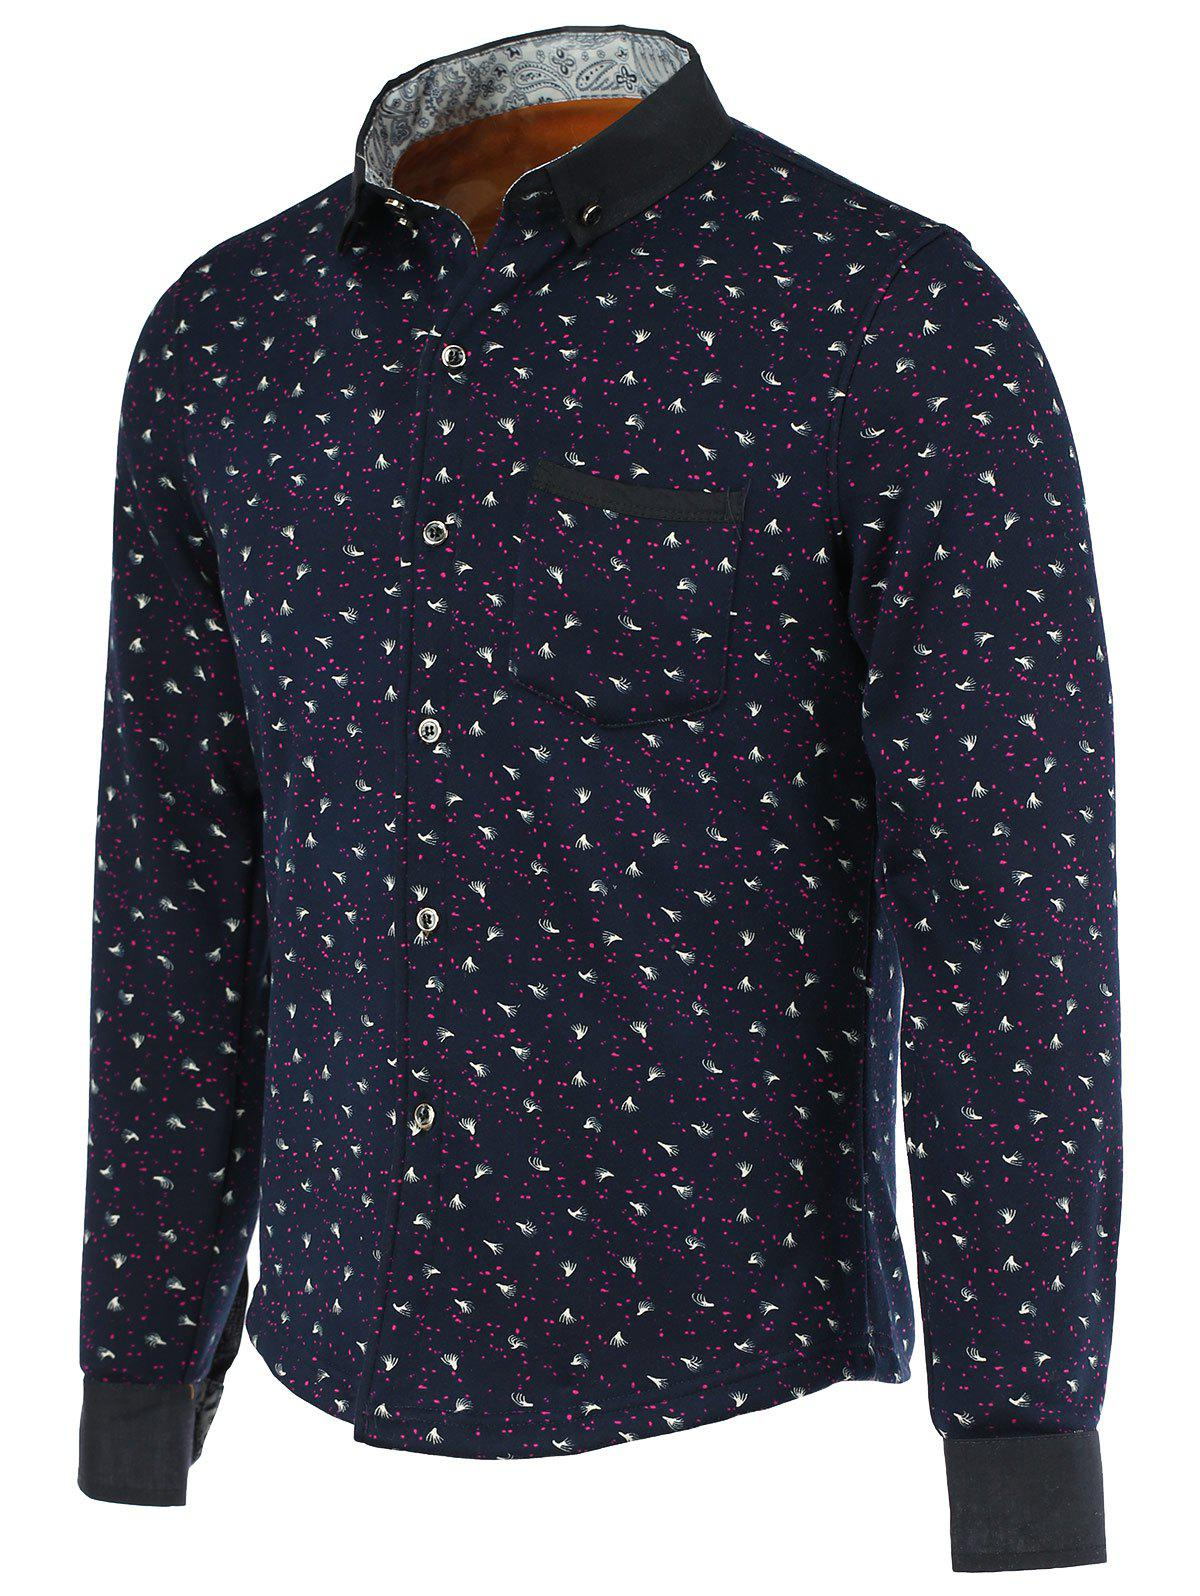 Ink Dot and Feather Print Fleece Turn-Down Collar Long Sleeve Button-Down Men's Shirt - CADETBLUE L